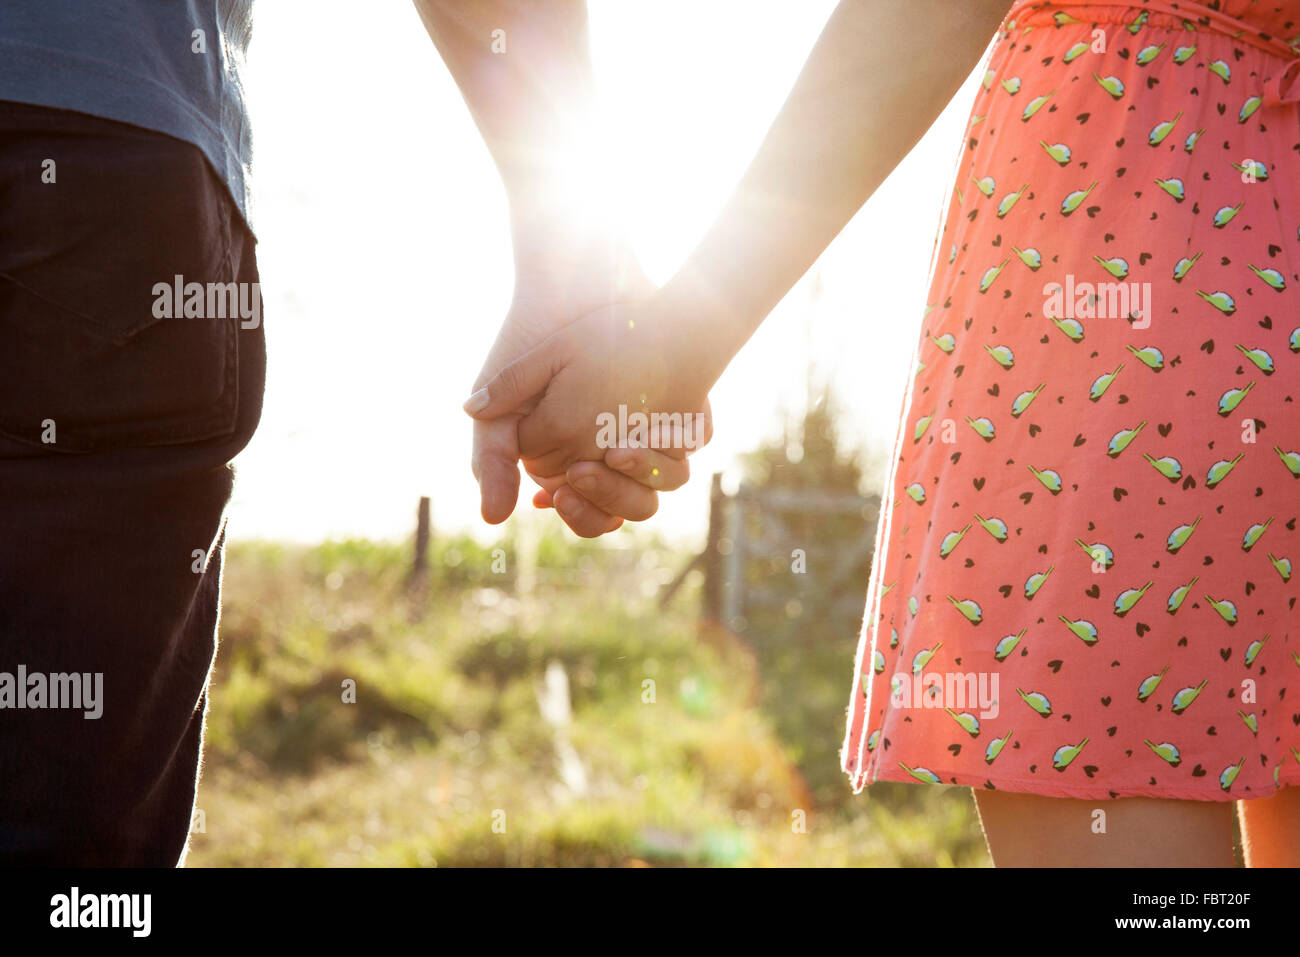 Giovane Holding Hands, close-up Immagini Stock